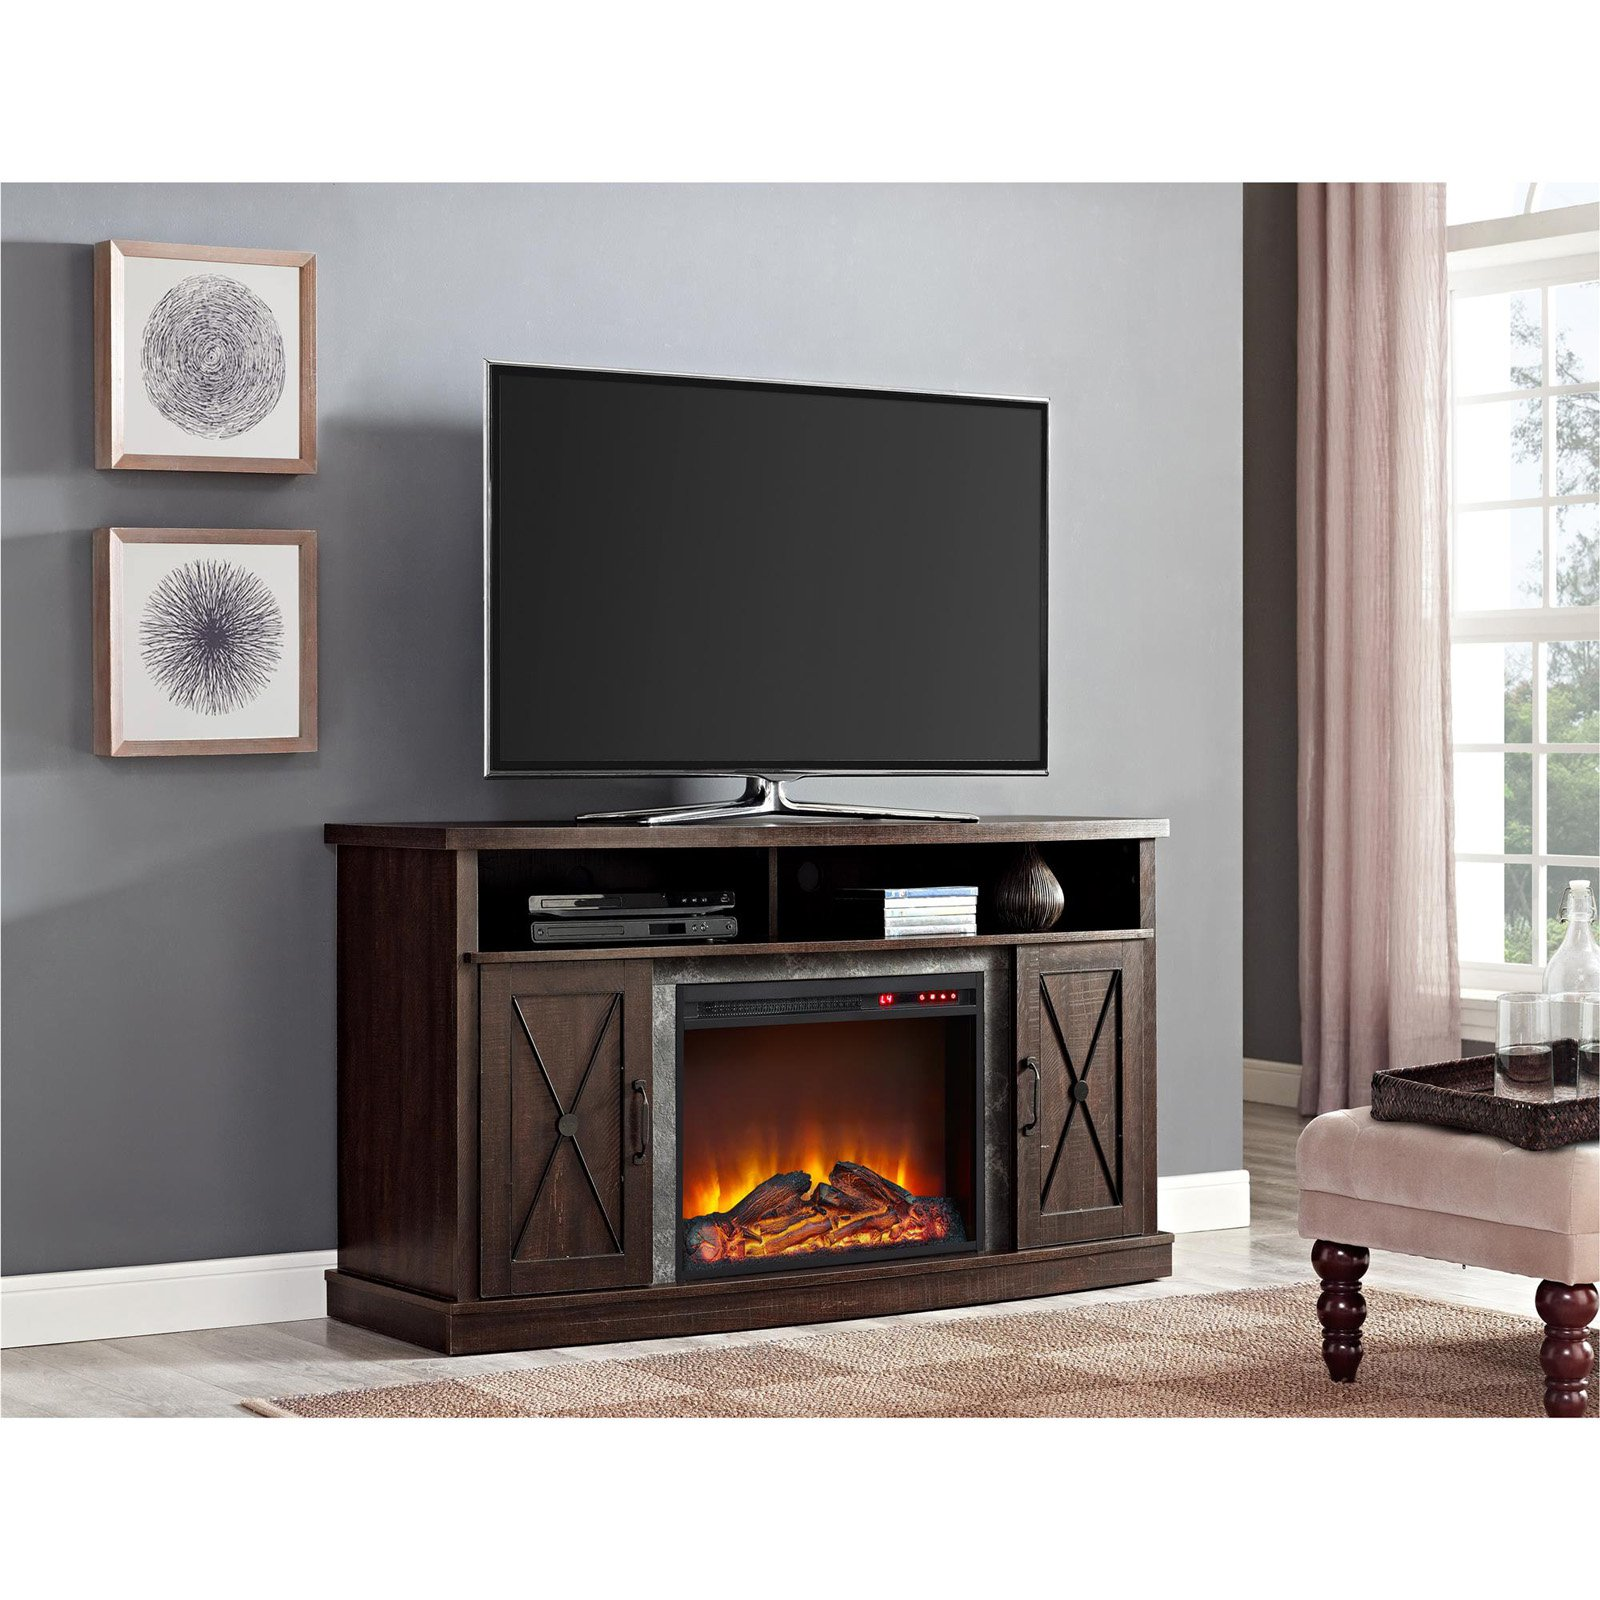 Ameriwood Home Barrow Creek Electric Fireplace TV Stand for TVs up to 60\ by Ameriwood